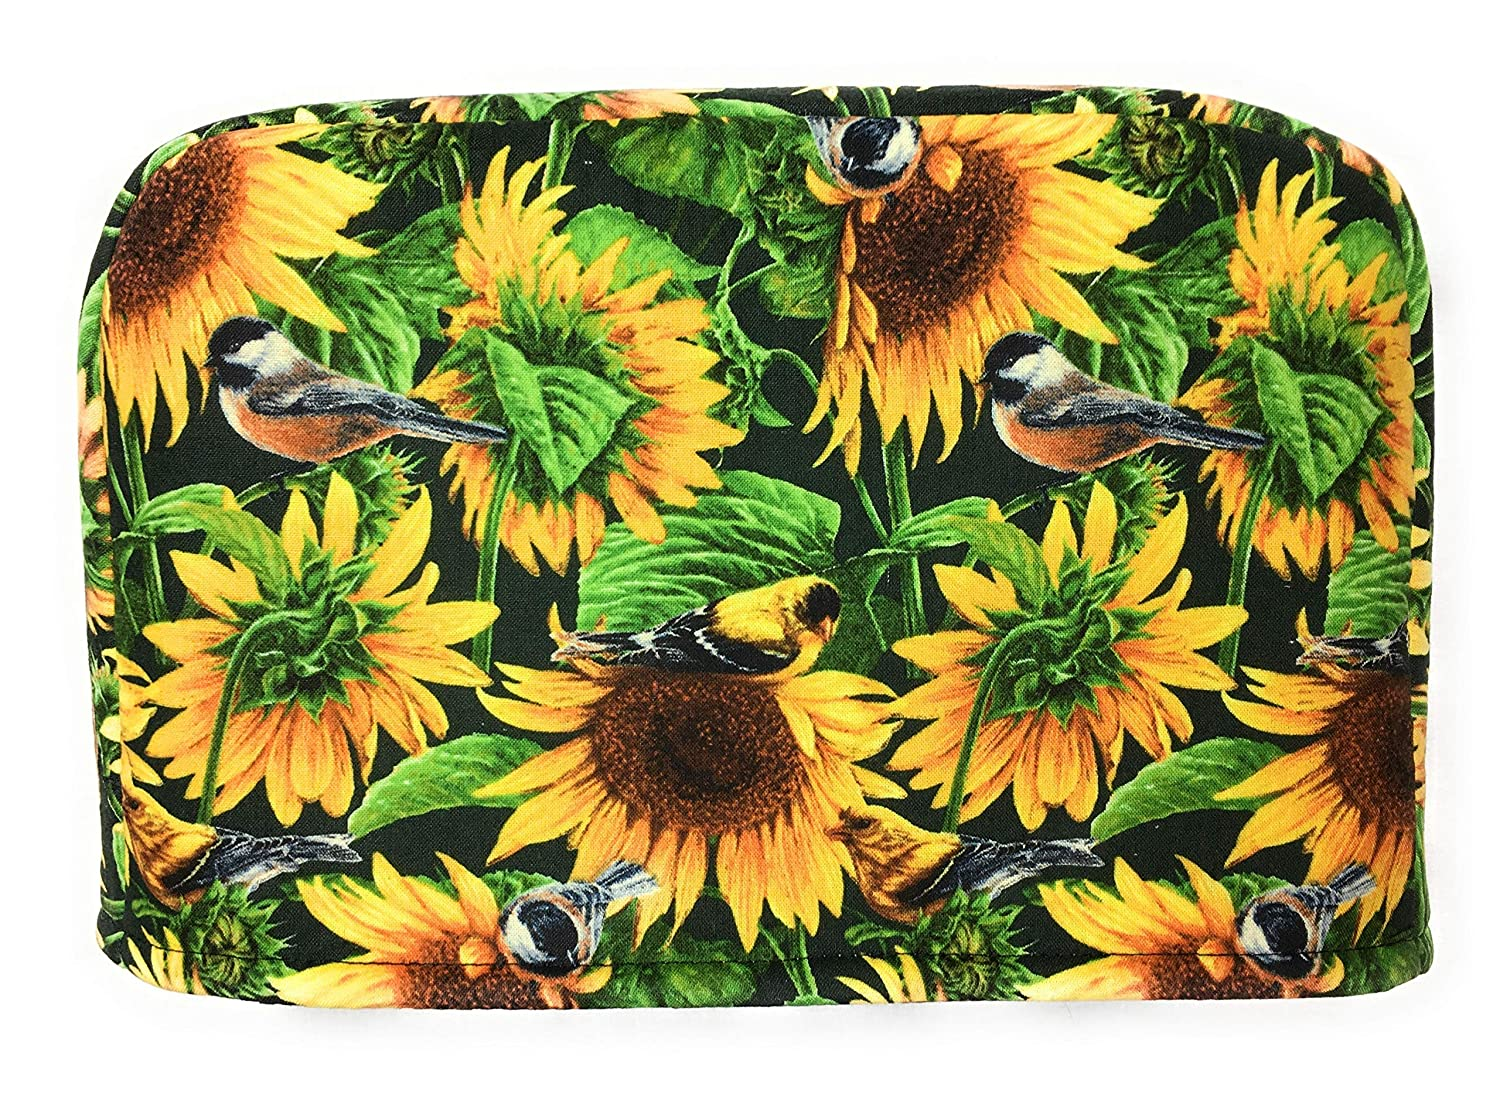 4 Slice Slot Yellow and Brown Sunflowers and Green Leaves and Birds Reversible Toaster Appliance Dust Cover Cozy 11.5(l) x 7.5(h) x 11.5(w)